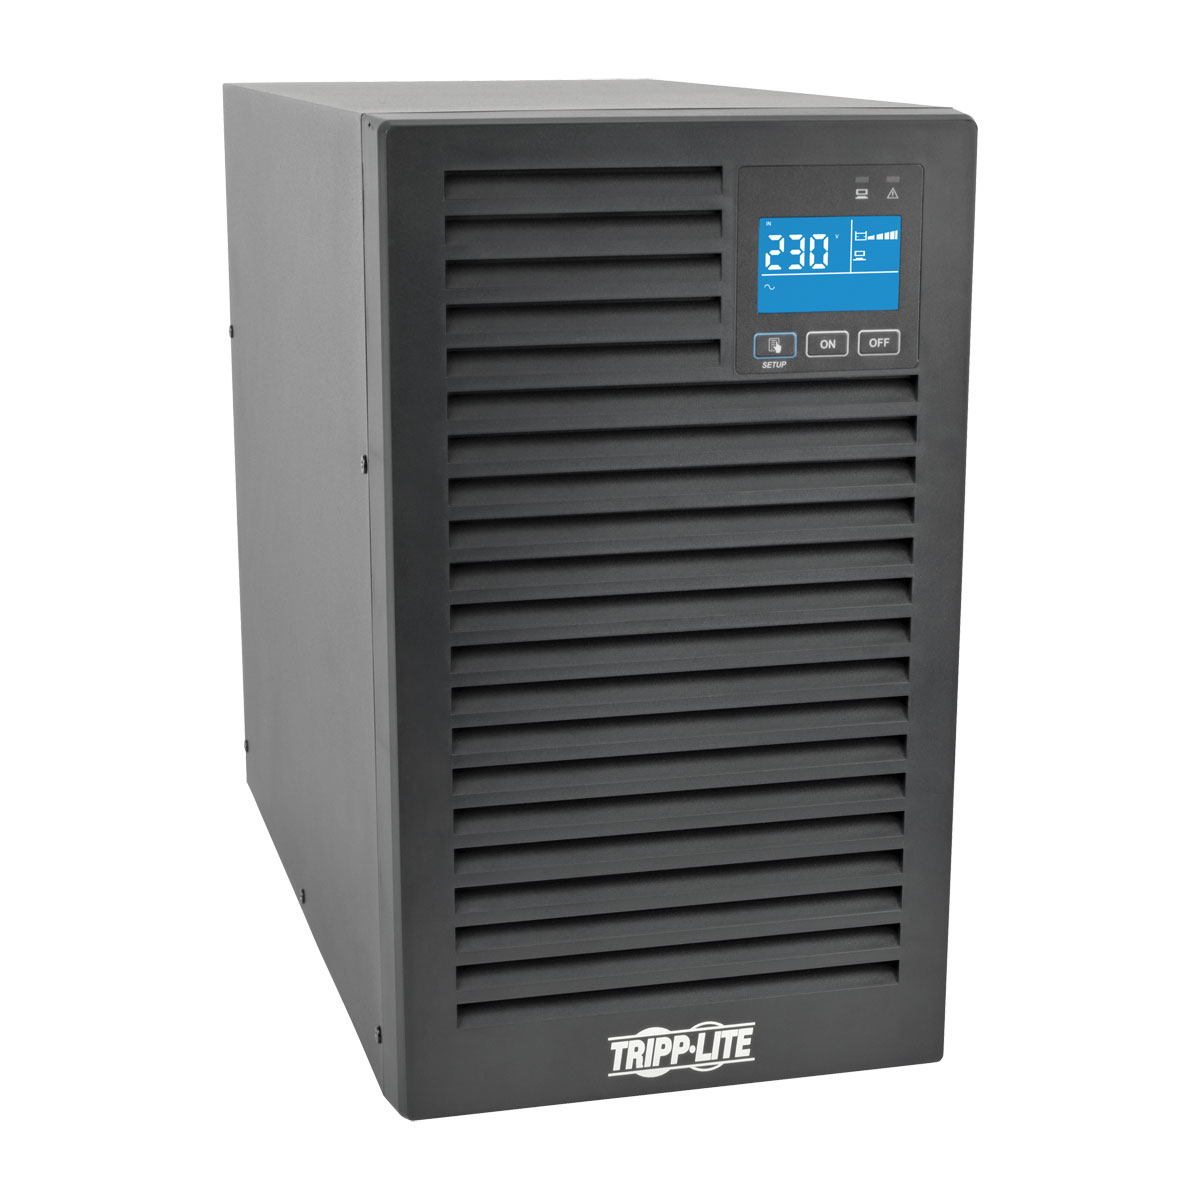 TRIPP LITE 3000VA 2700W SMARTONLINE 230V 3KVA ON-LINE DOUBLE-CONVERSION UPS